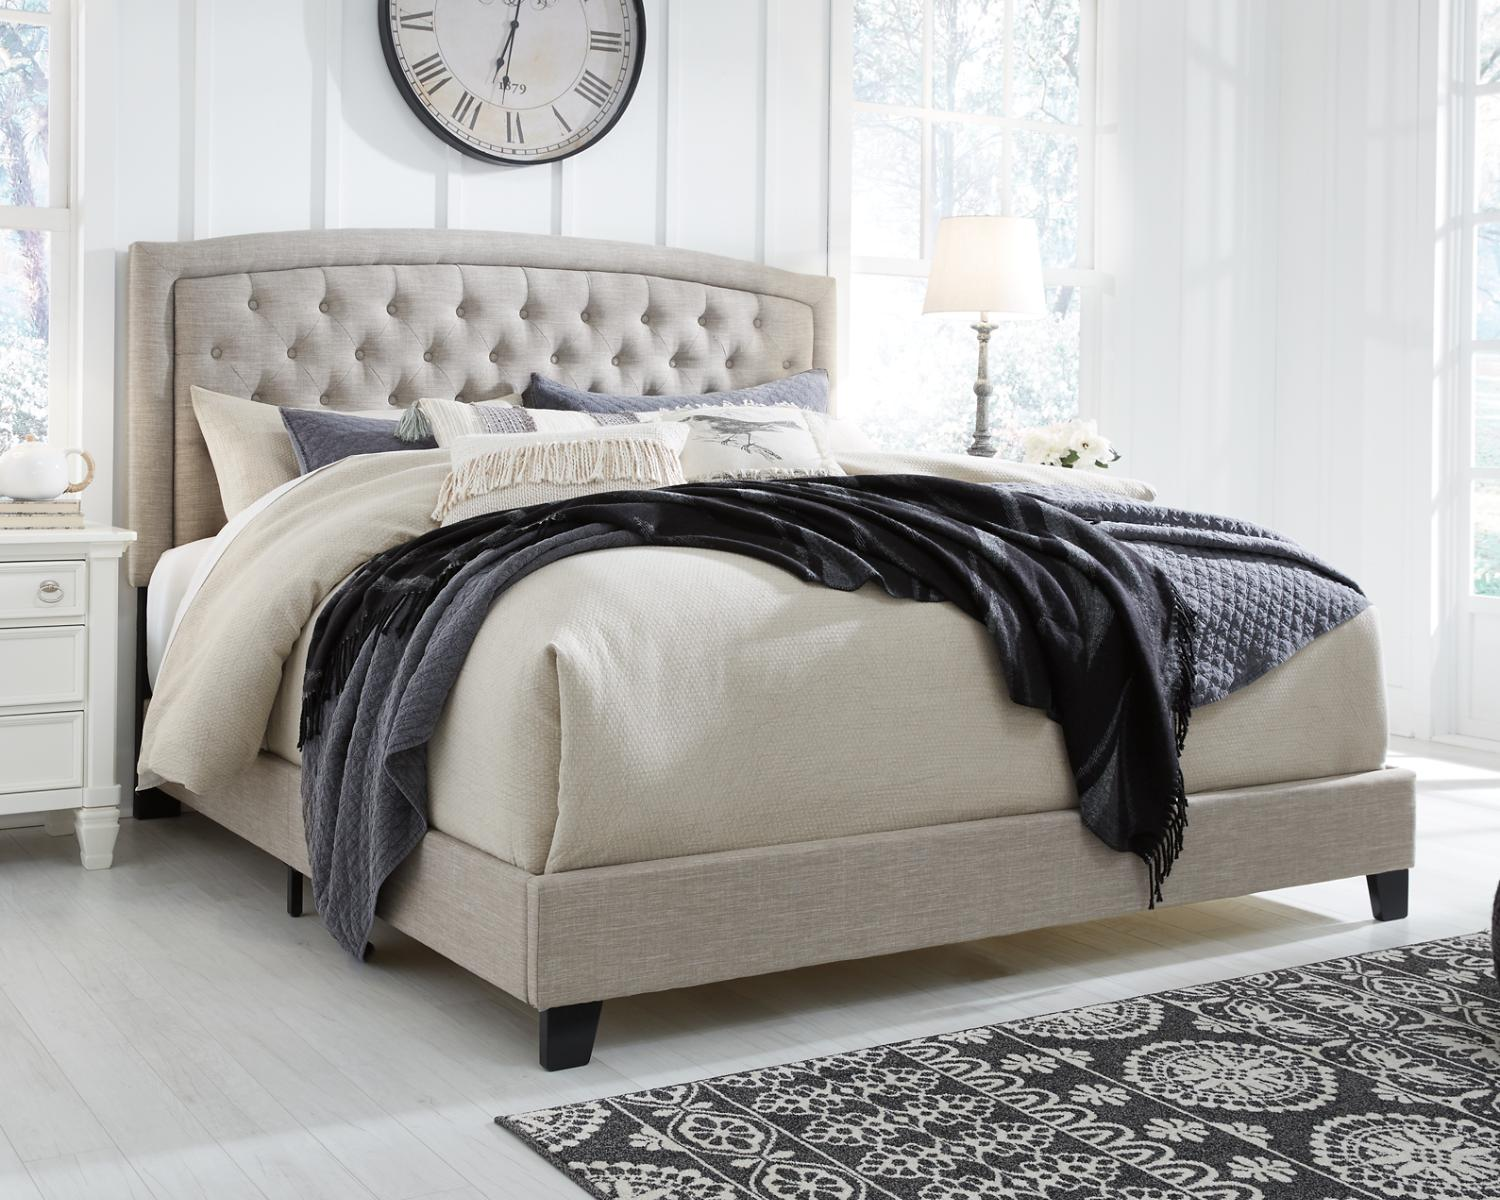 Signature Design By Ashley Jerary Light Gray Tufted Queen Upholstered Bed Walmart Com Walmart Com